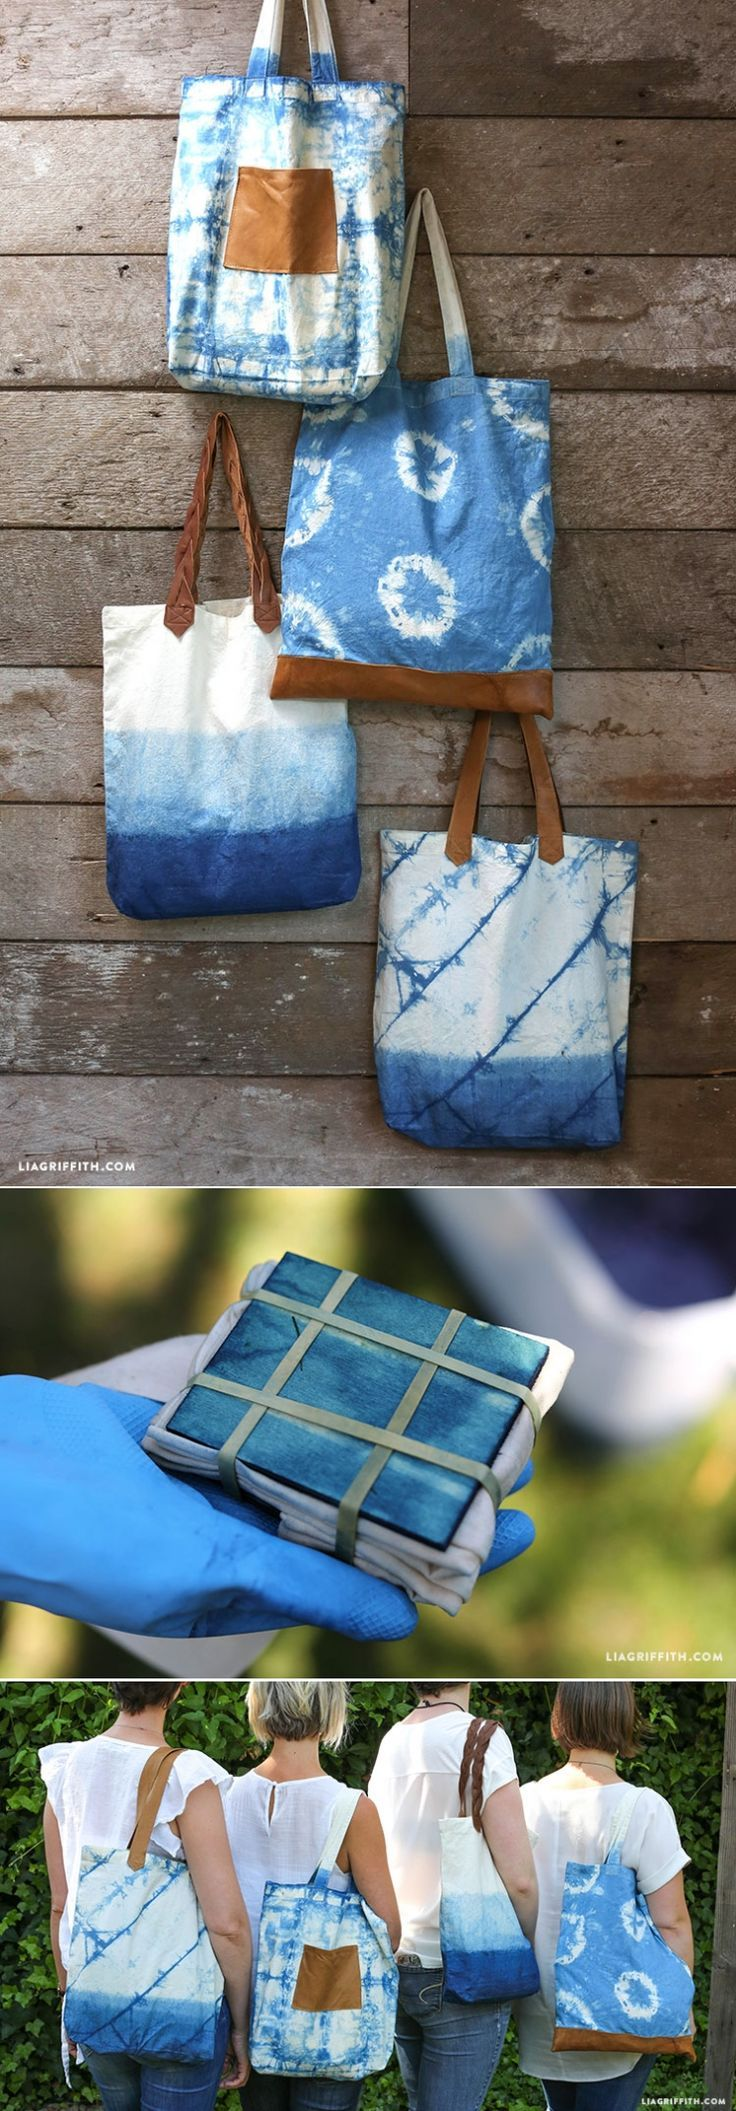 Tote bags dyed with indigo using tie dye & shibori techniques | Lia…